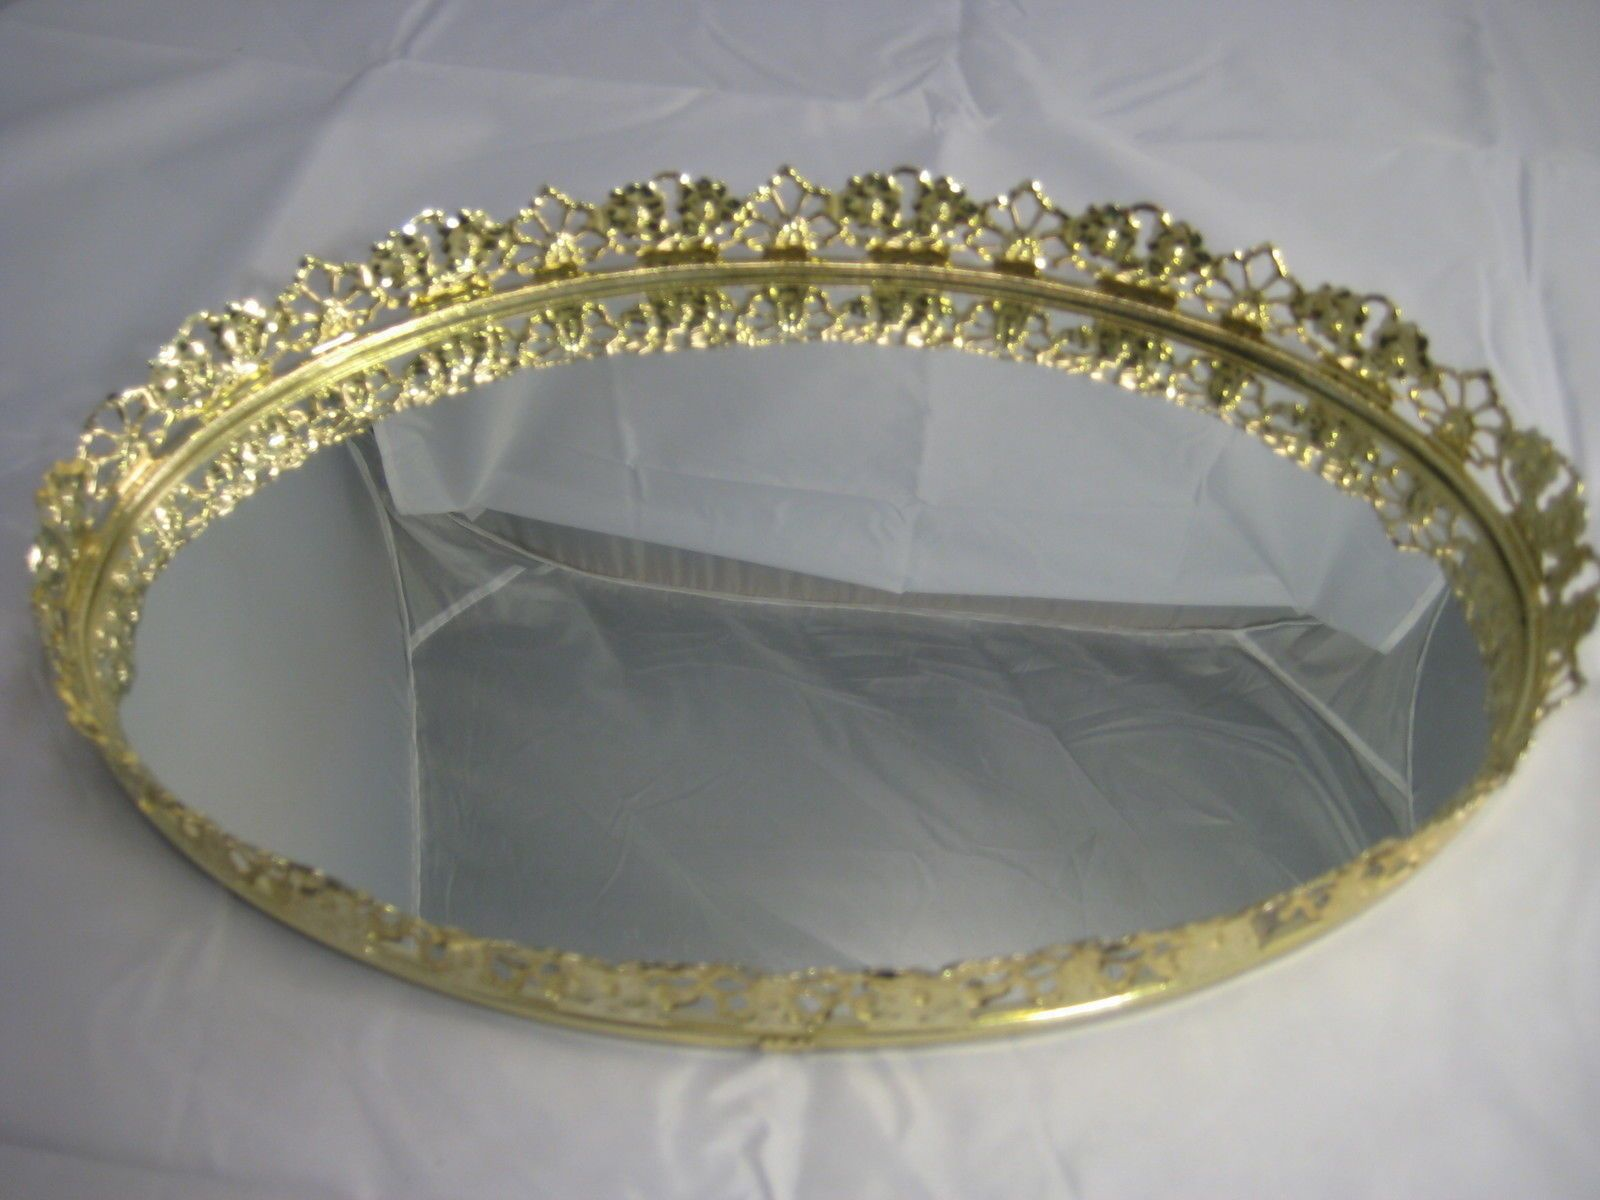 Antique vanity tray with lace insert - Victorian Tray Vintage Mirror Vintage Vanity Mirror Tray Oval Shape Gilded Floral Edge Victorian